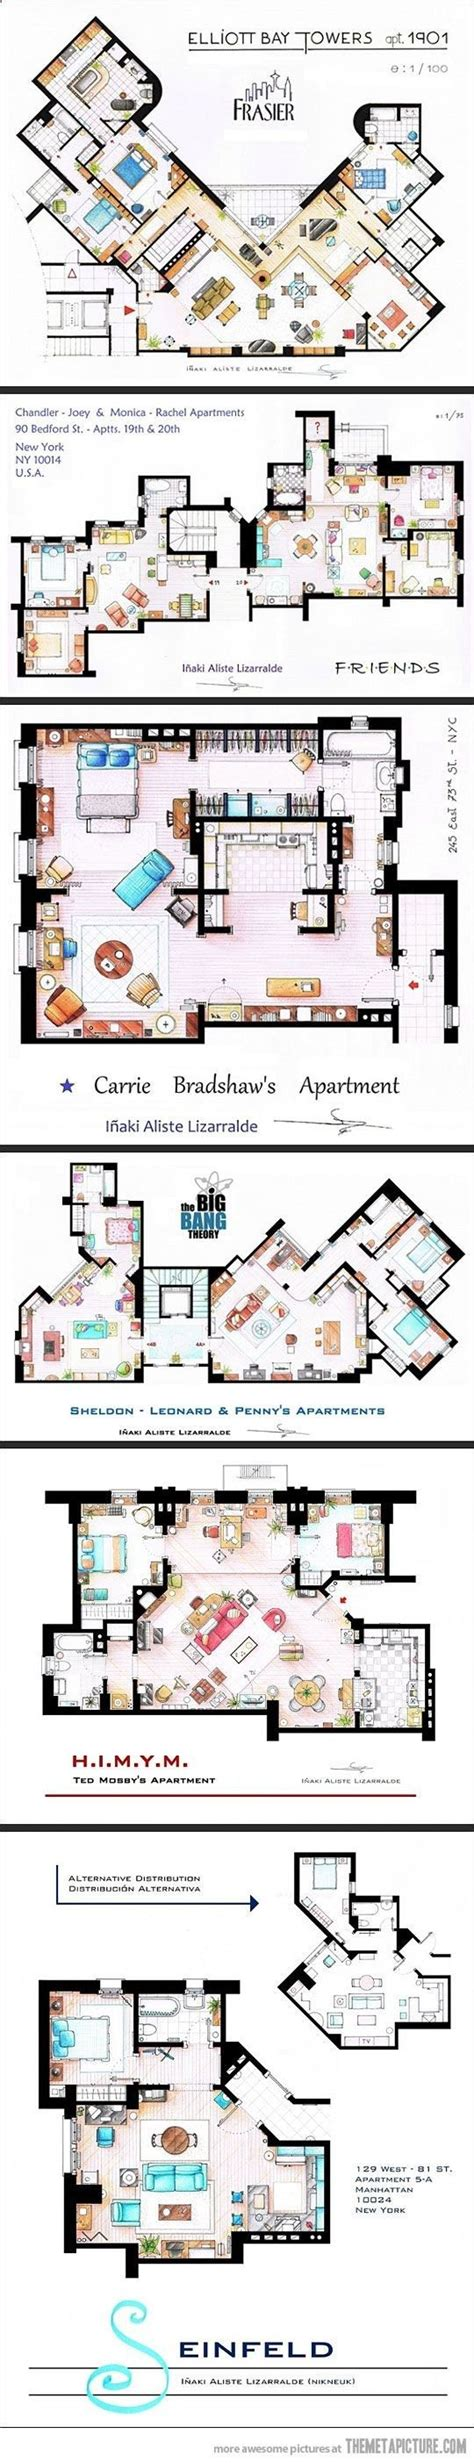 seinfeld apartment floor plan 8768 best images about the michael jackson internet